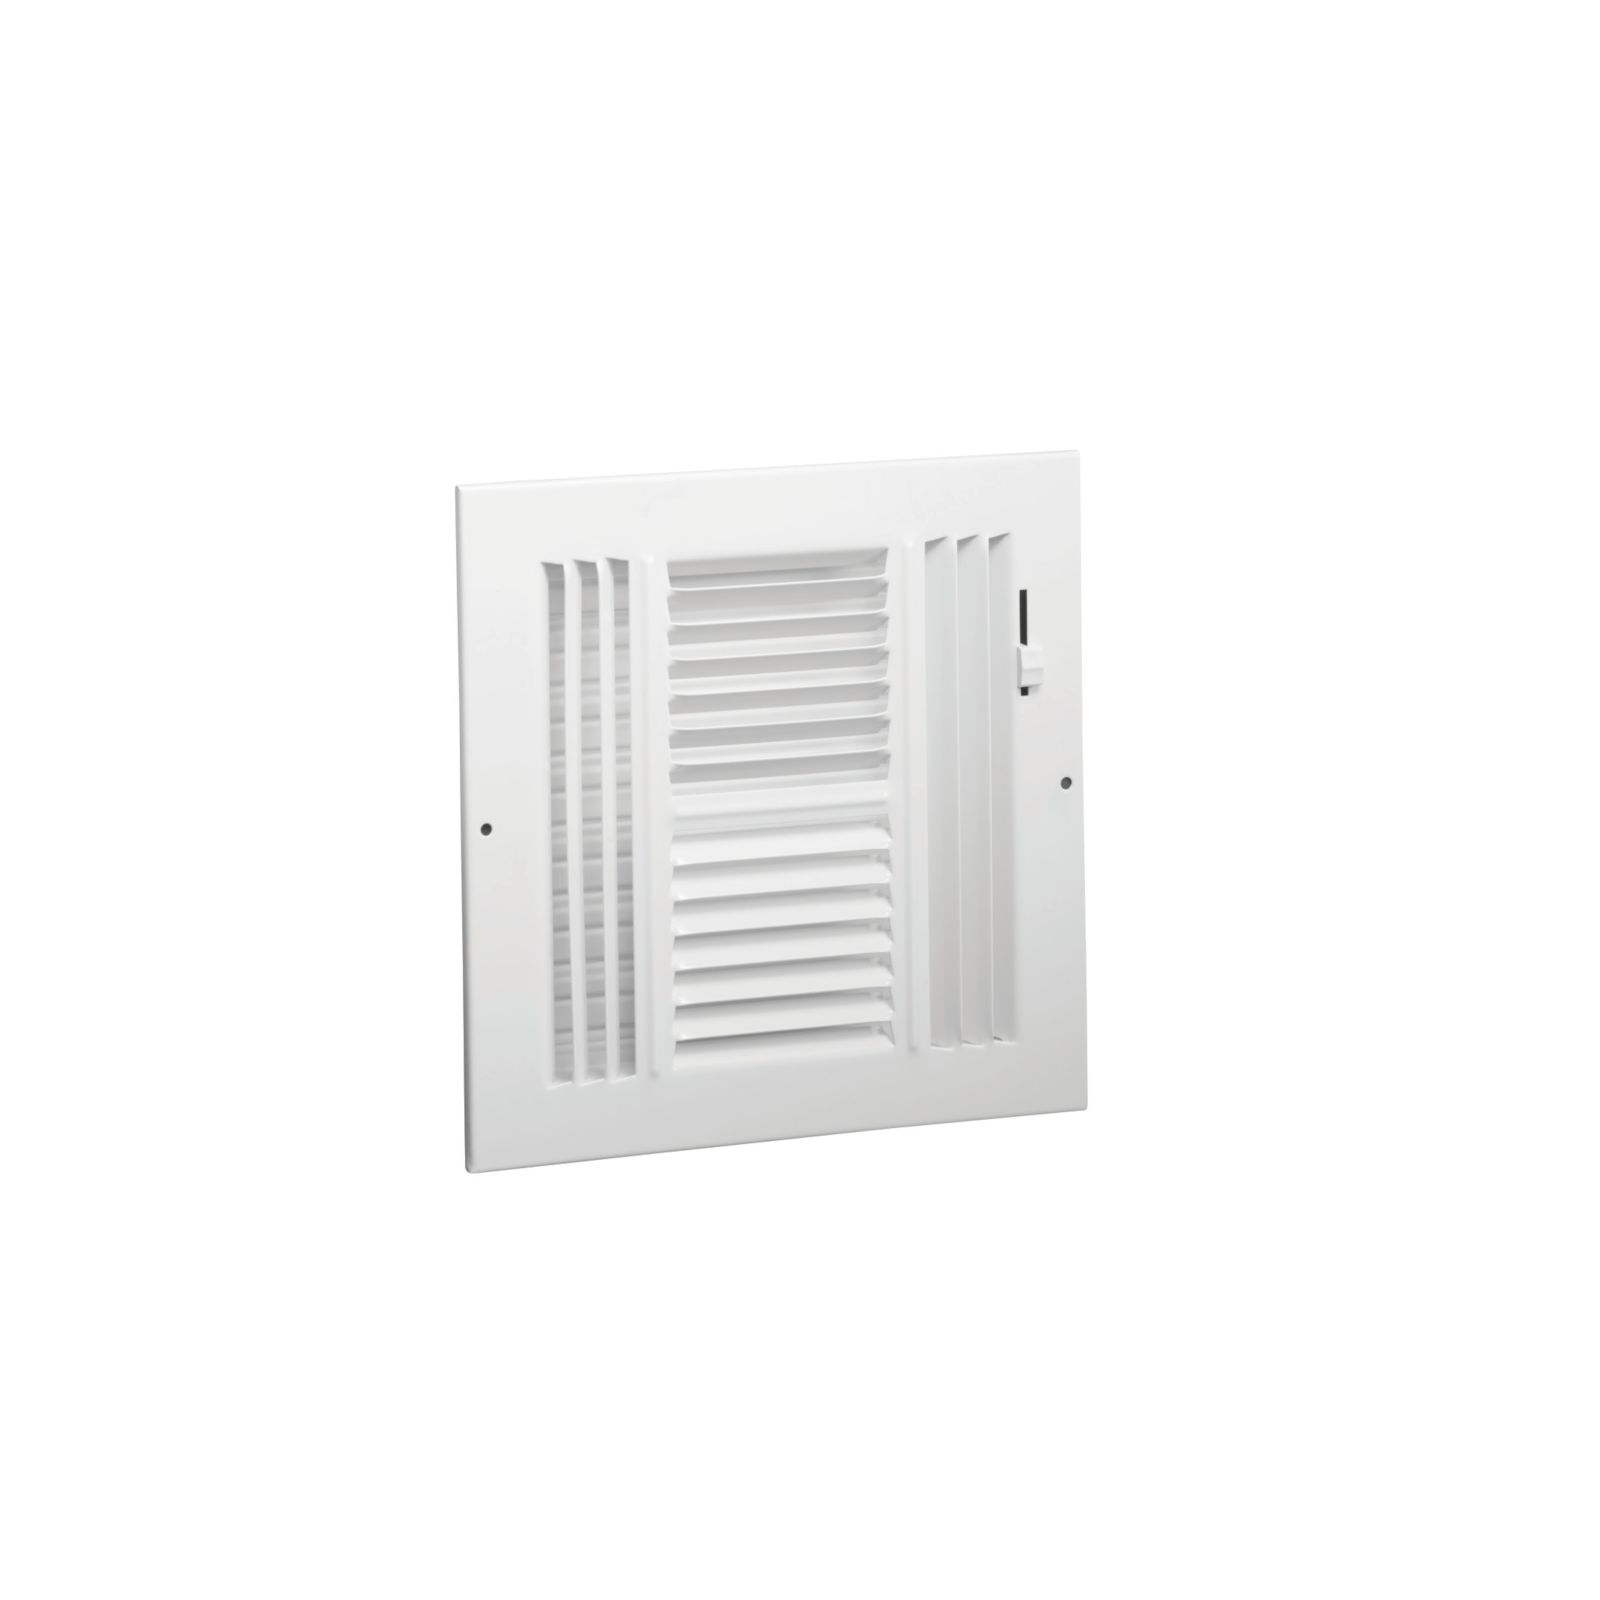 "Hart & Cooley 703932 - #684M Steel 4-Way Sidewall/Ceiling Register, Multi-Shutter Damper, Metal Handle, White, 6"" X 6"""